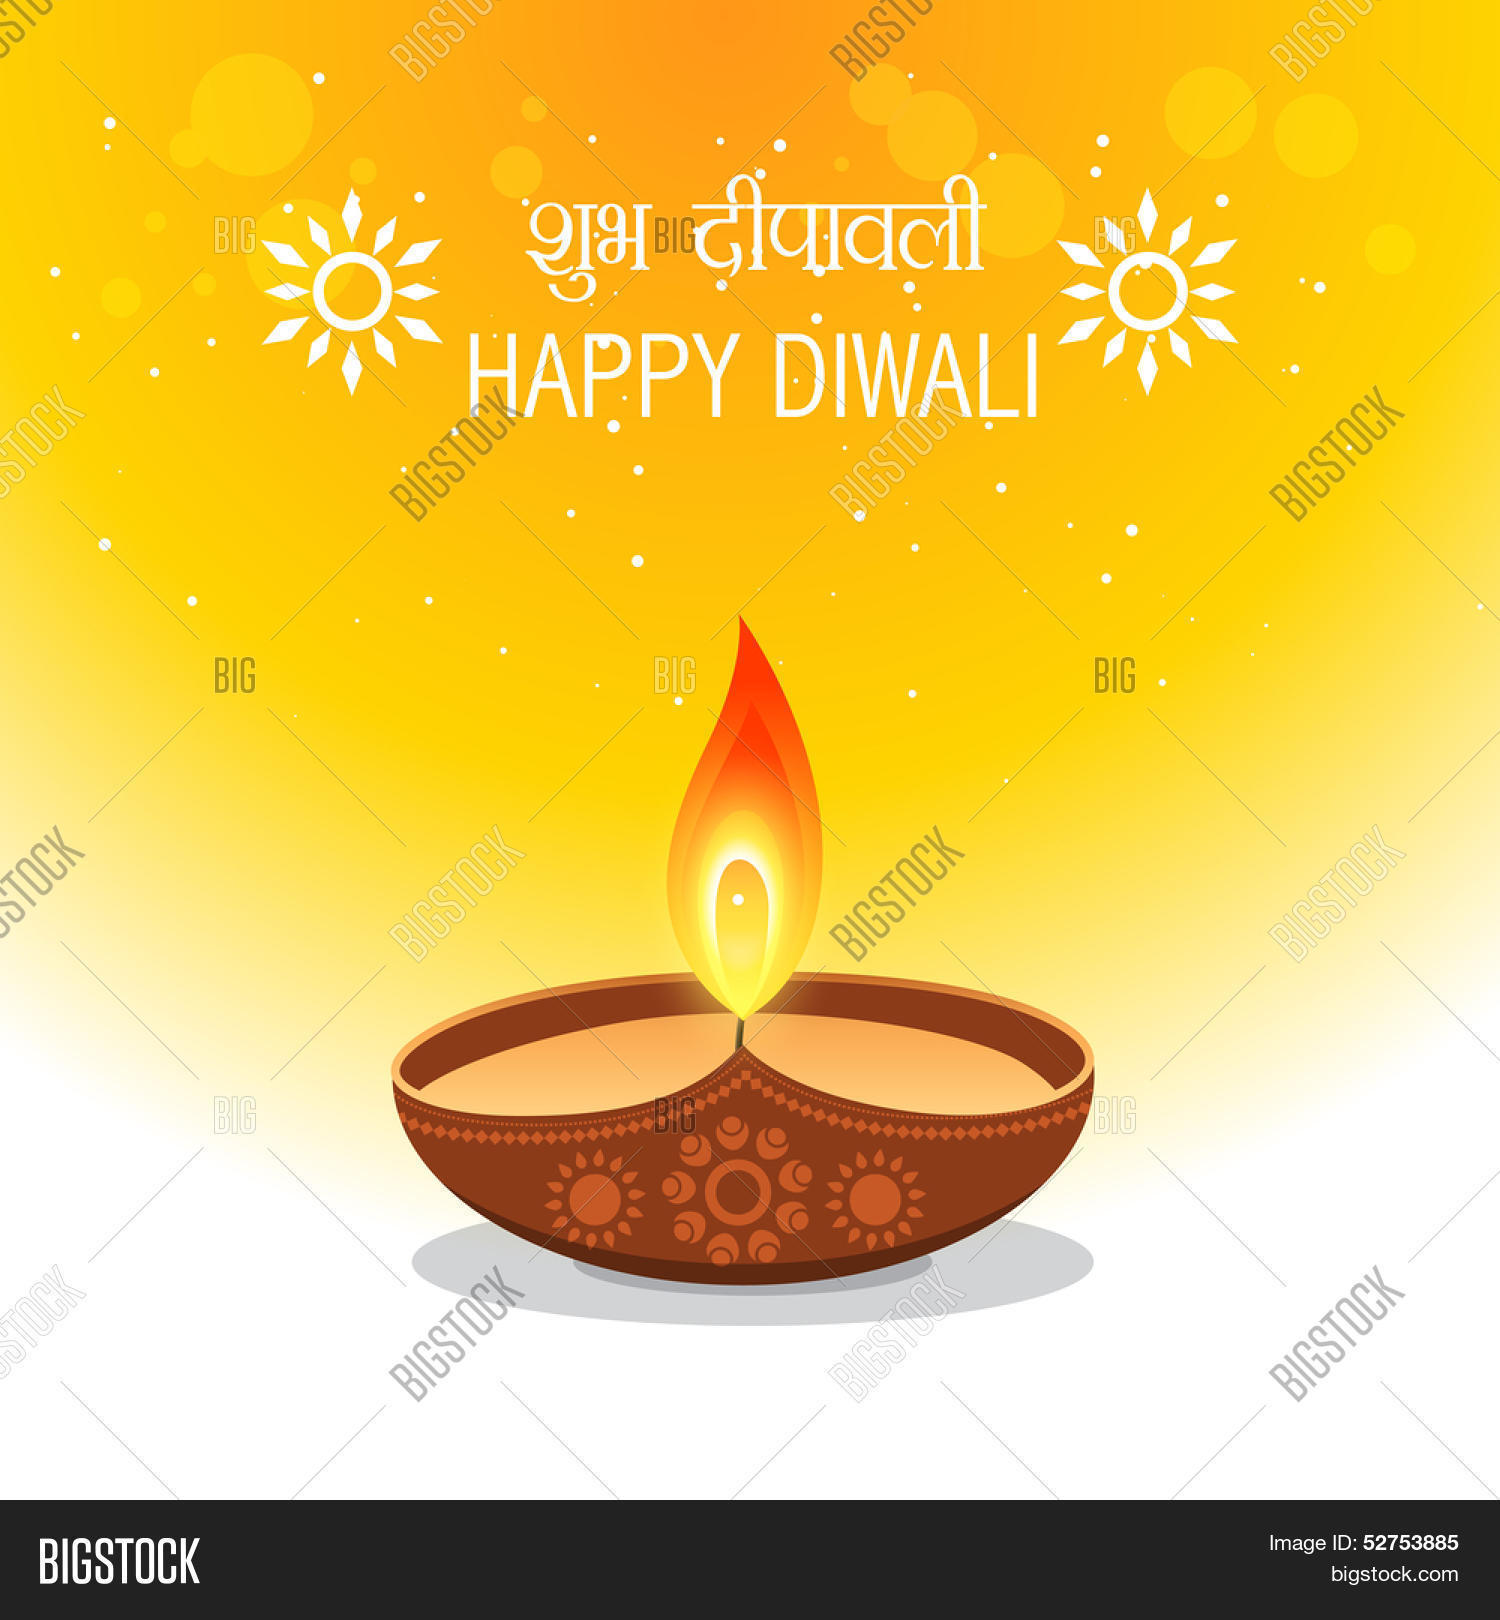 Shubh Diwali Vector Photo Free Trial Bigstock